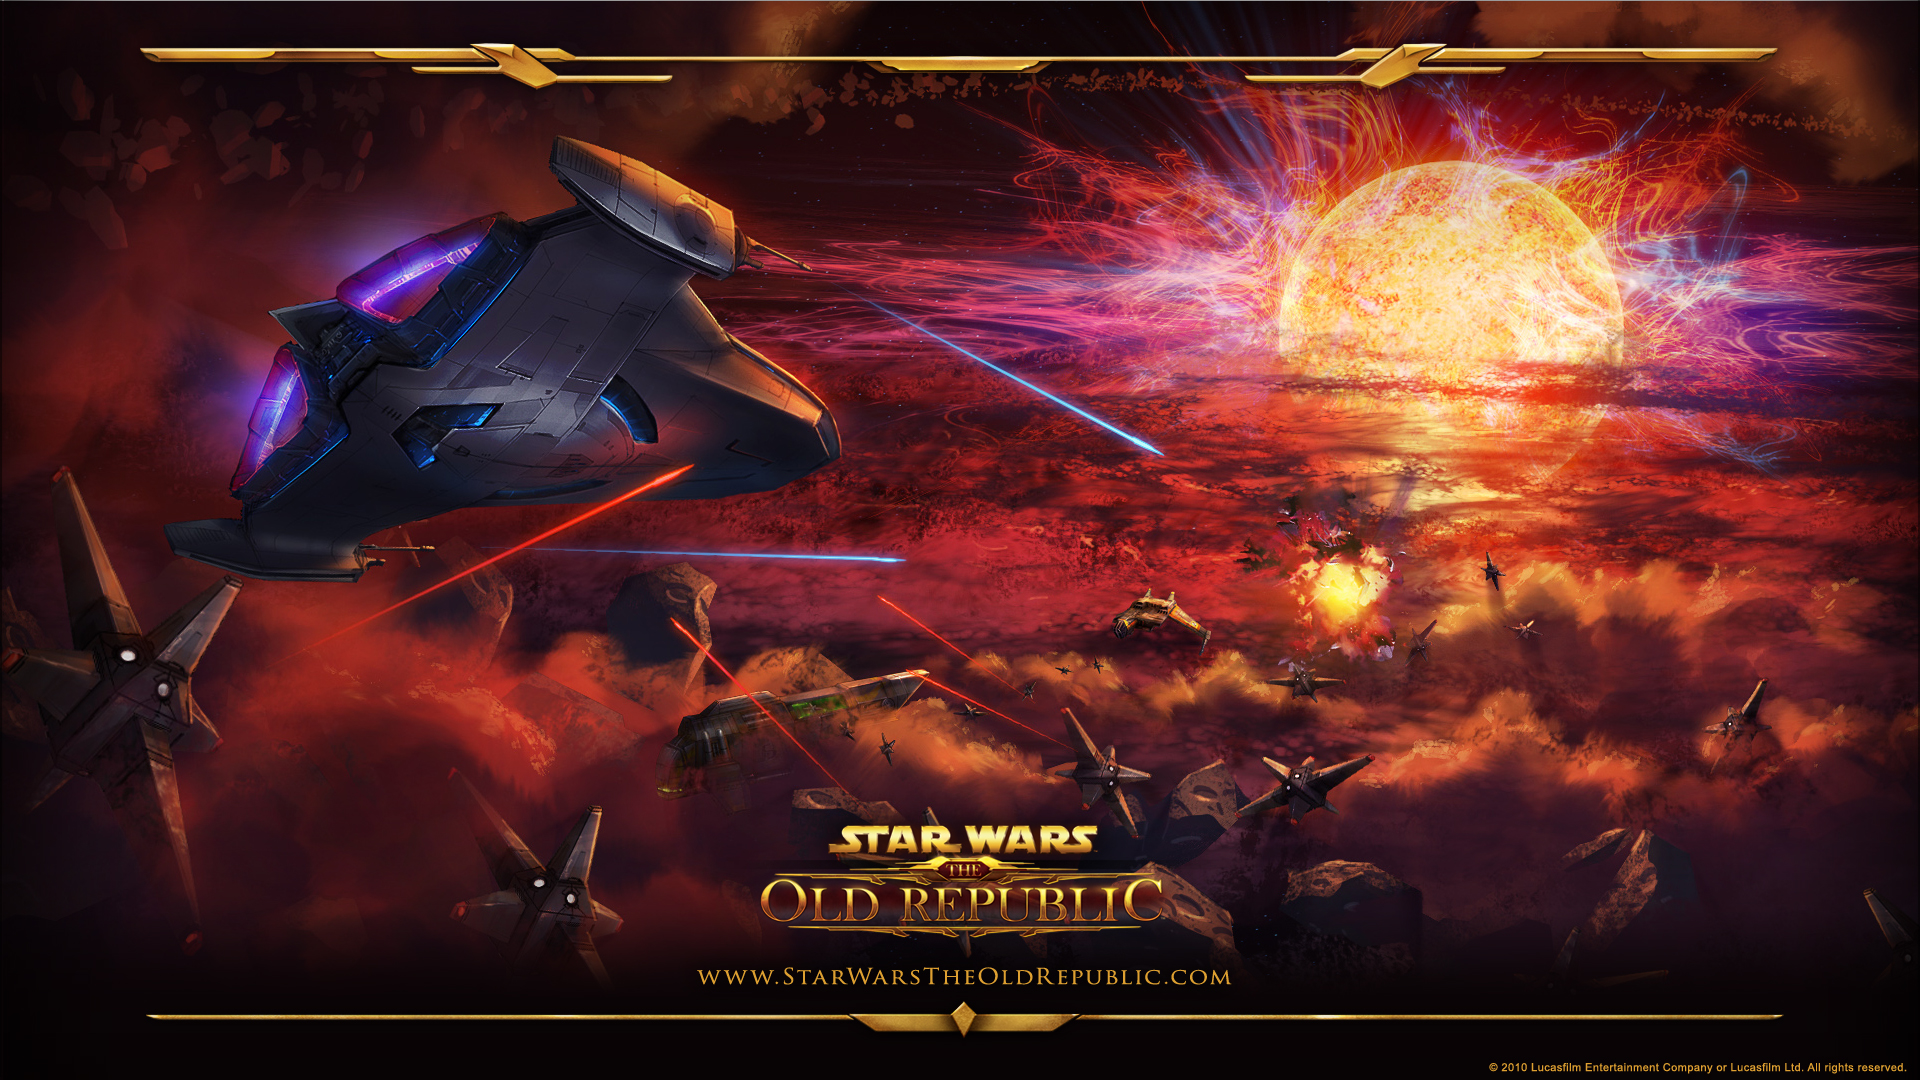 Star Wars The Old Republic Wallpaper Space Battle